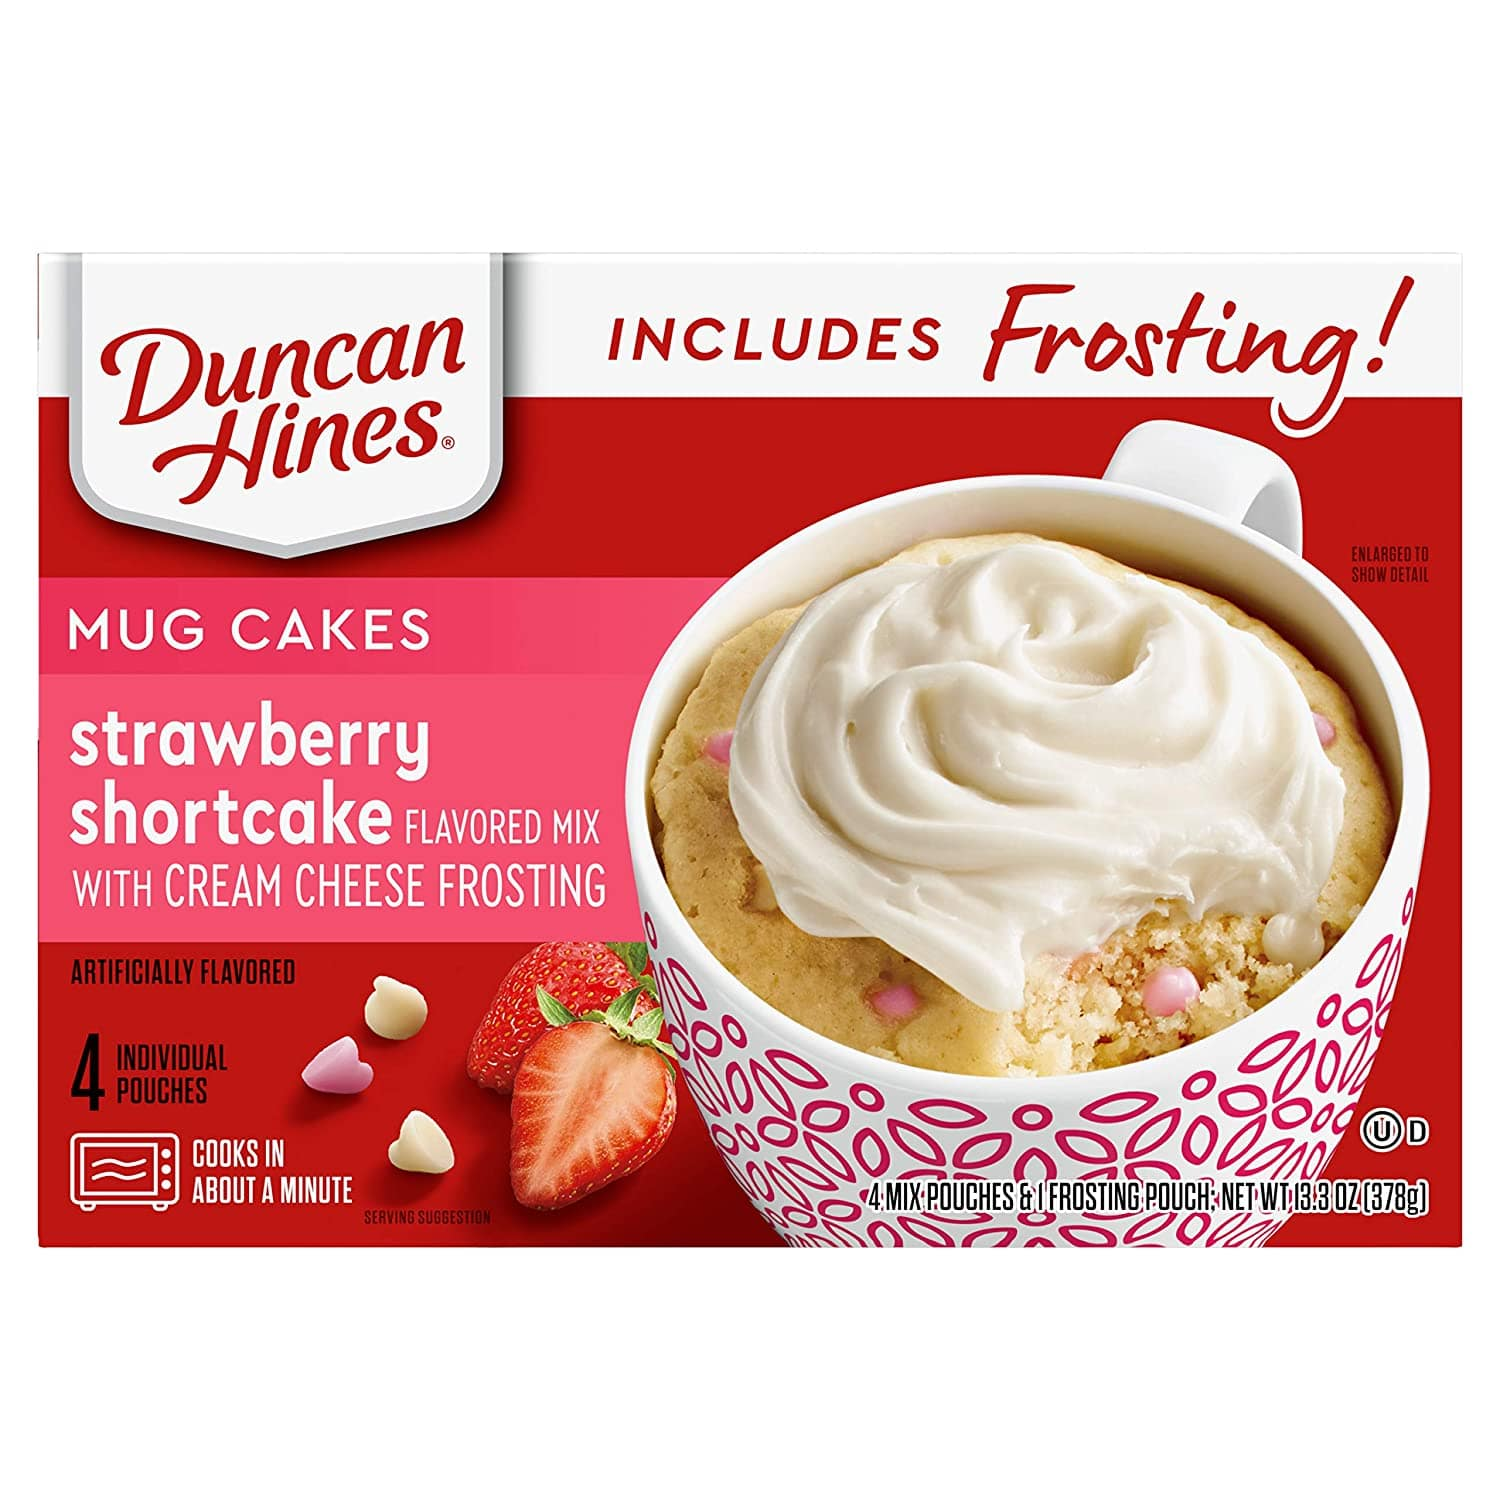 4-Ct Duncan Hines Mug Cakes (Strawberry Shortcake Mix w/ Cream Cheese Frosting) $1.75 w/ S&S + Free Shipping w/ Prime or $25+